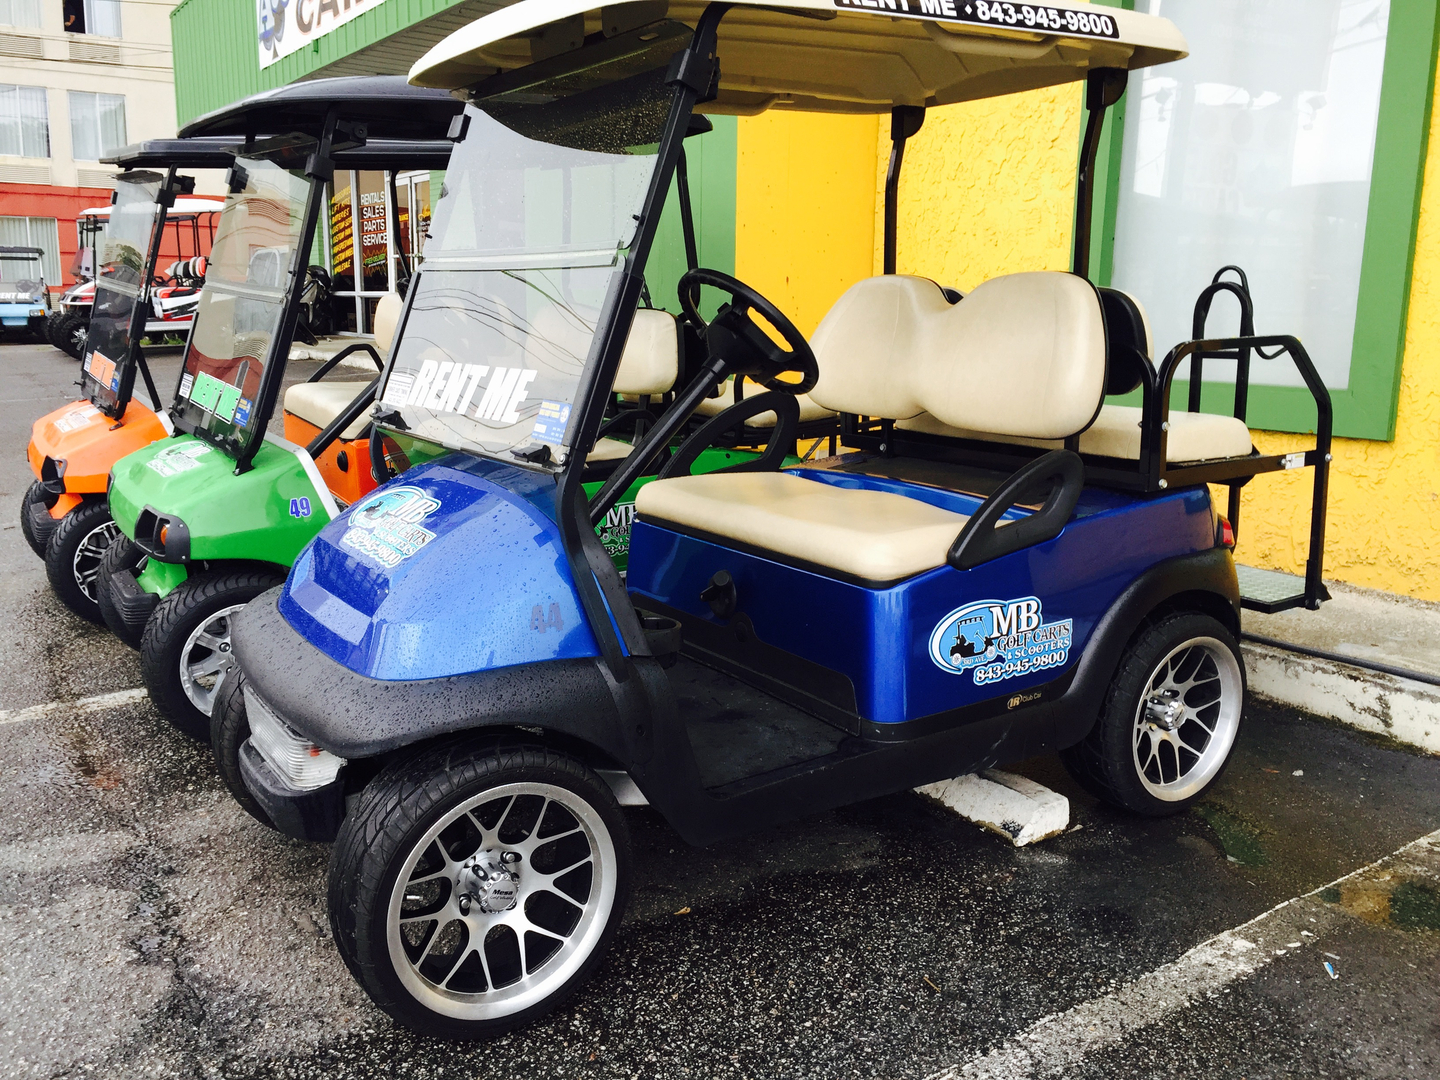 Myrtle Beach Golf Carts Llc - Rentals, Golf Cart Rentals, Scooters on golf carts custom made, golf car king, golf carts for 9 year olds, golf carts on craigslist, golf carts less than 500, welding cart king,